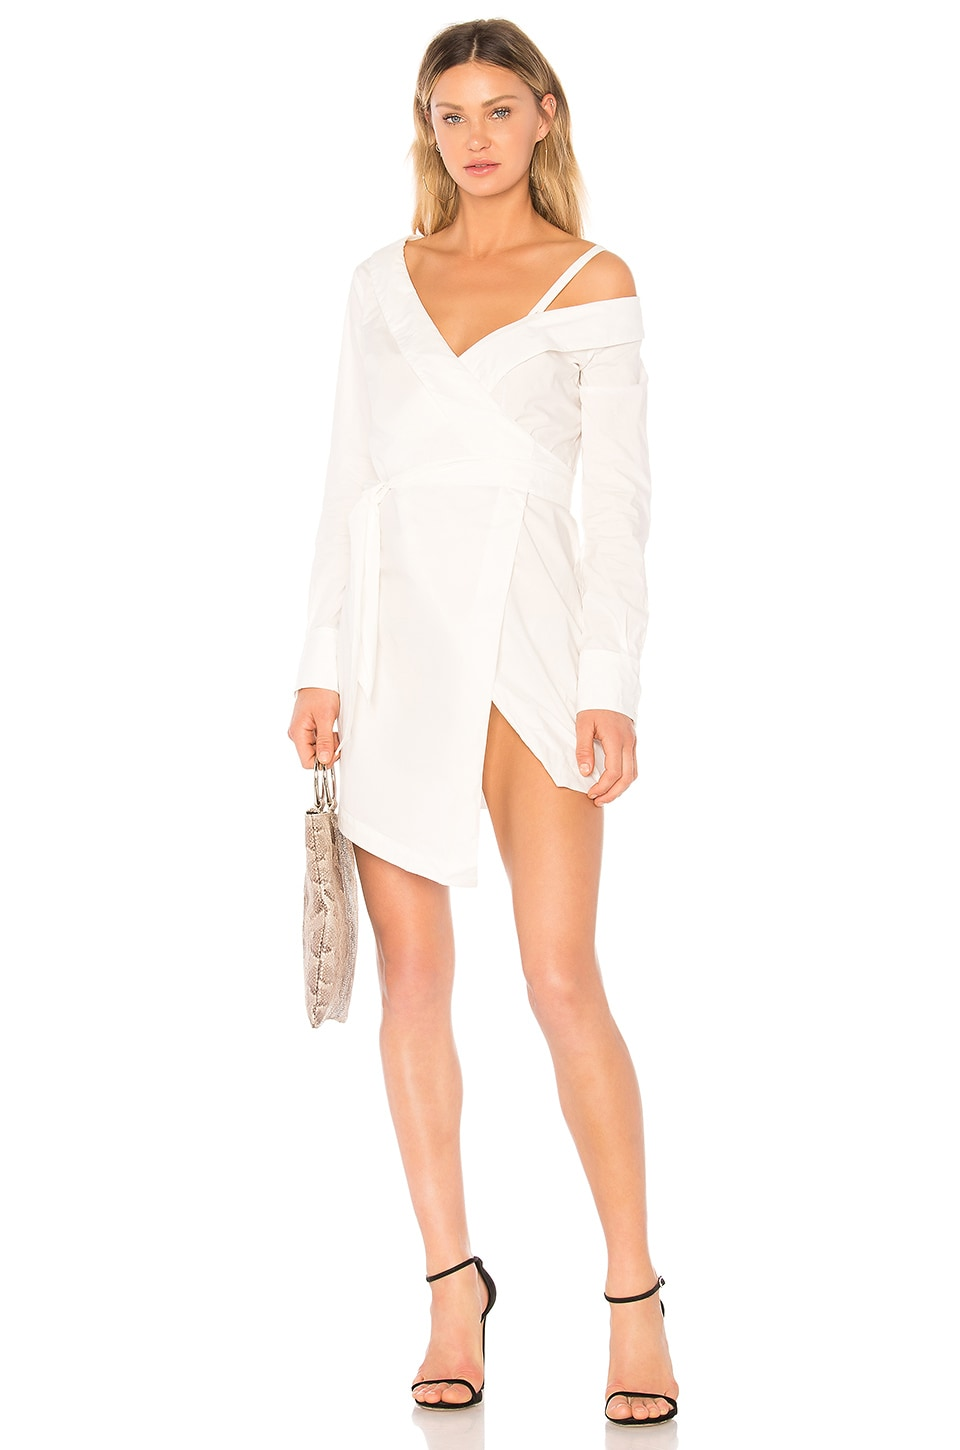 CHRISSY TEIGEN X REVOLVE DESTINATION WRAP DRESS